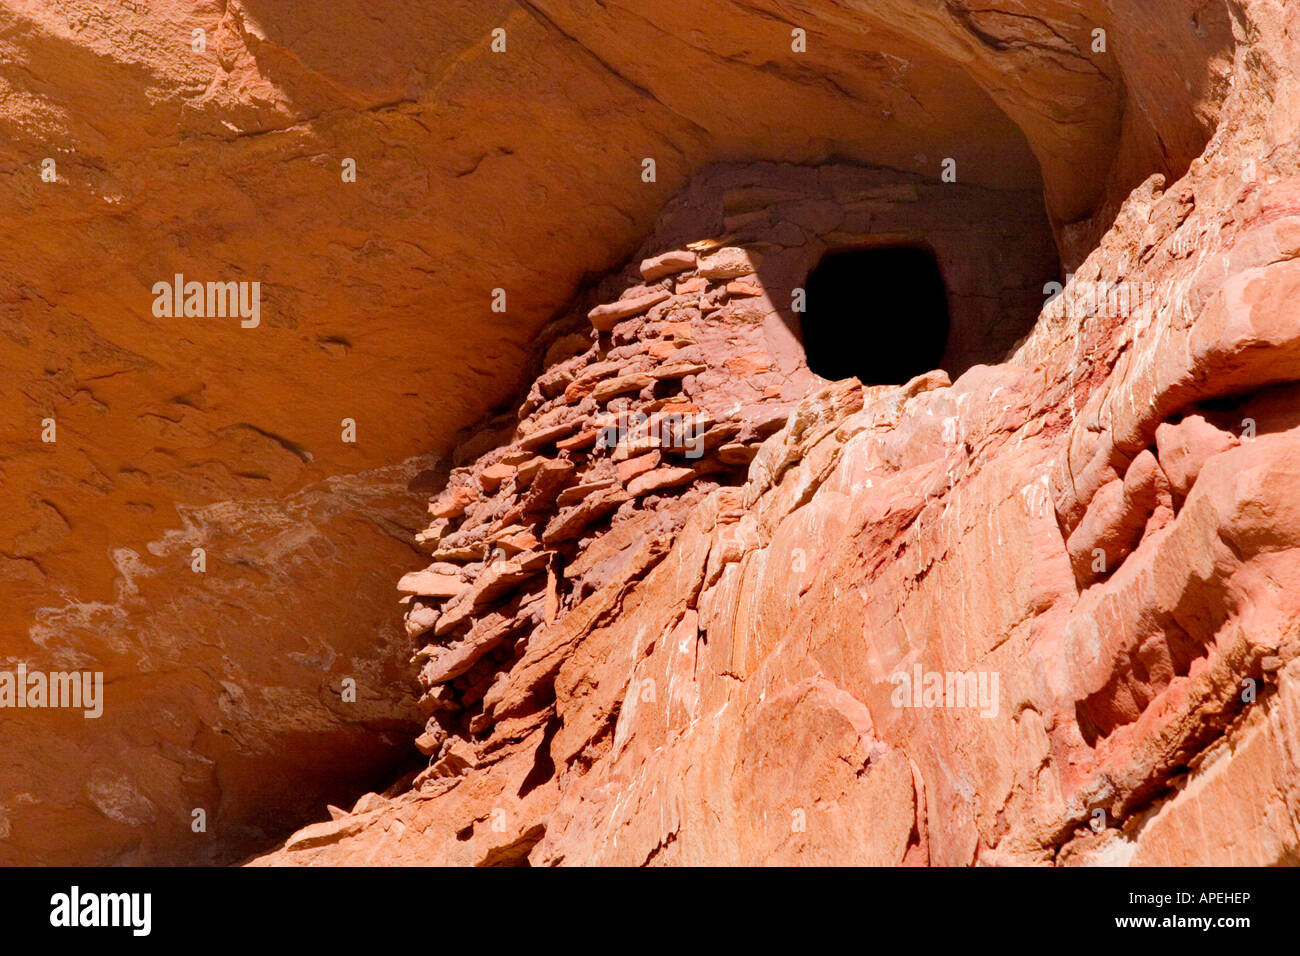 A native indian food storage location high on a cliff wall in a canyon - Stock Image